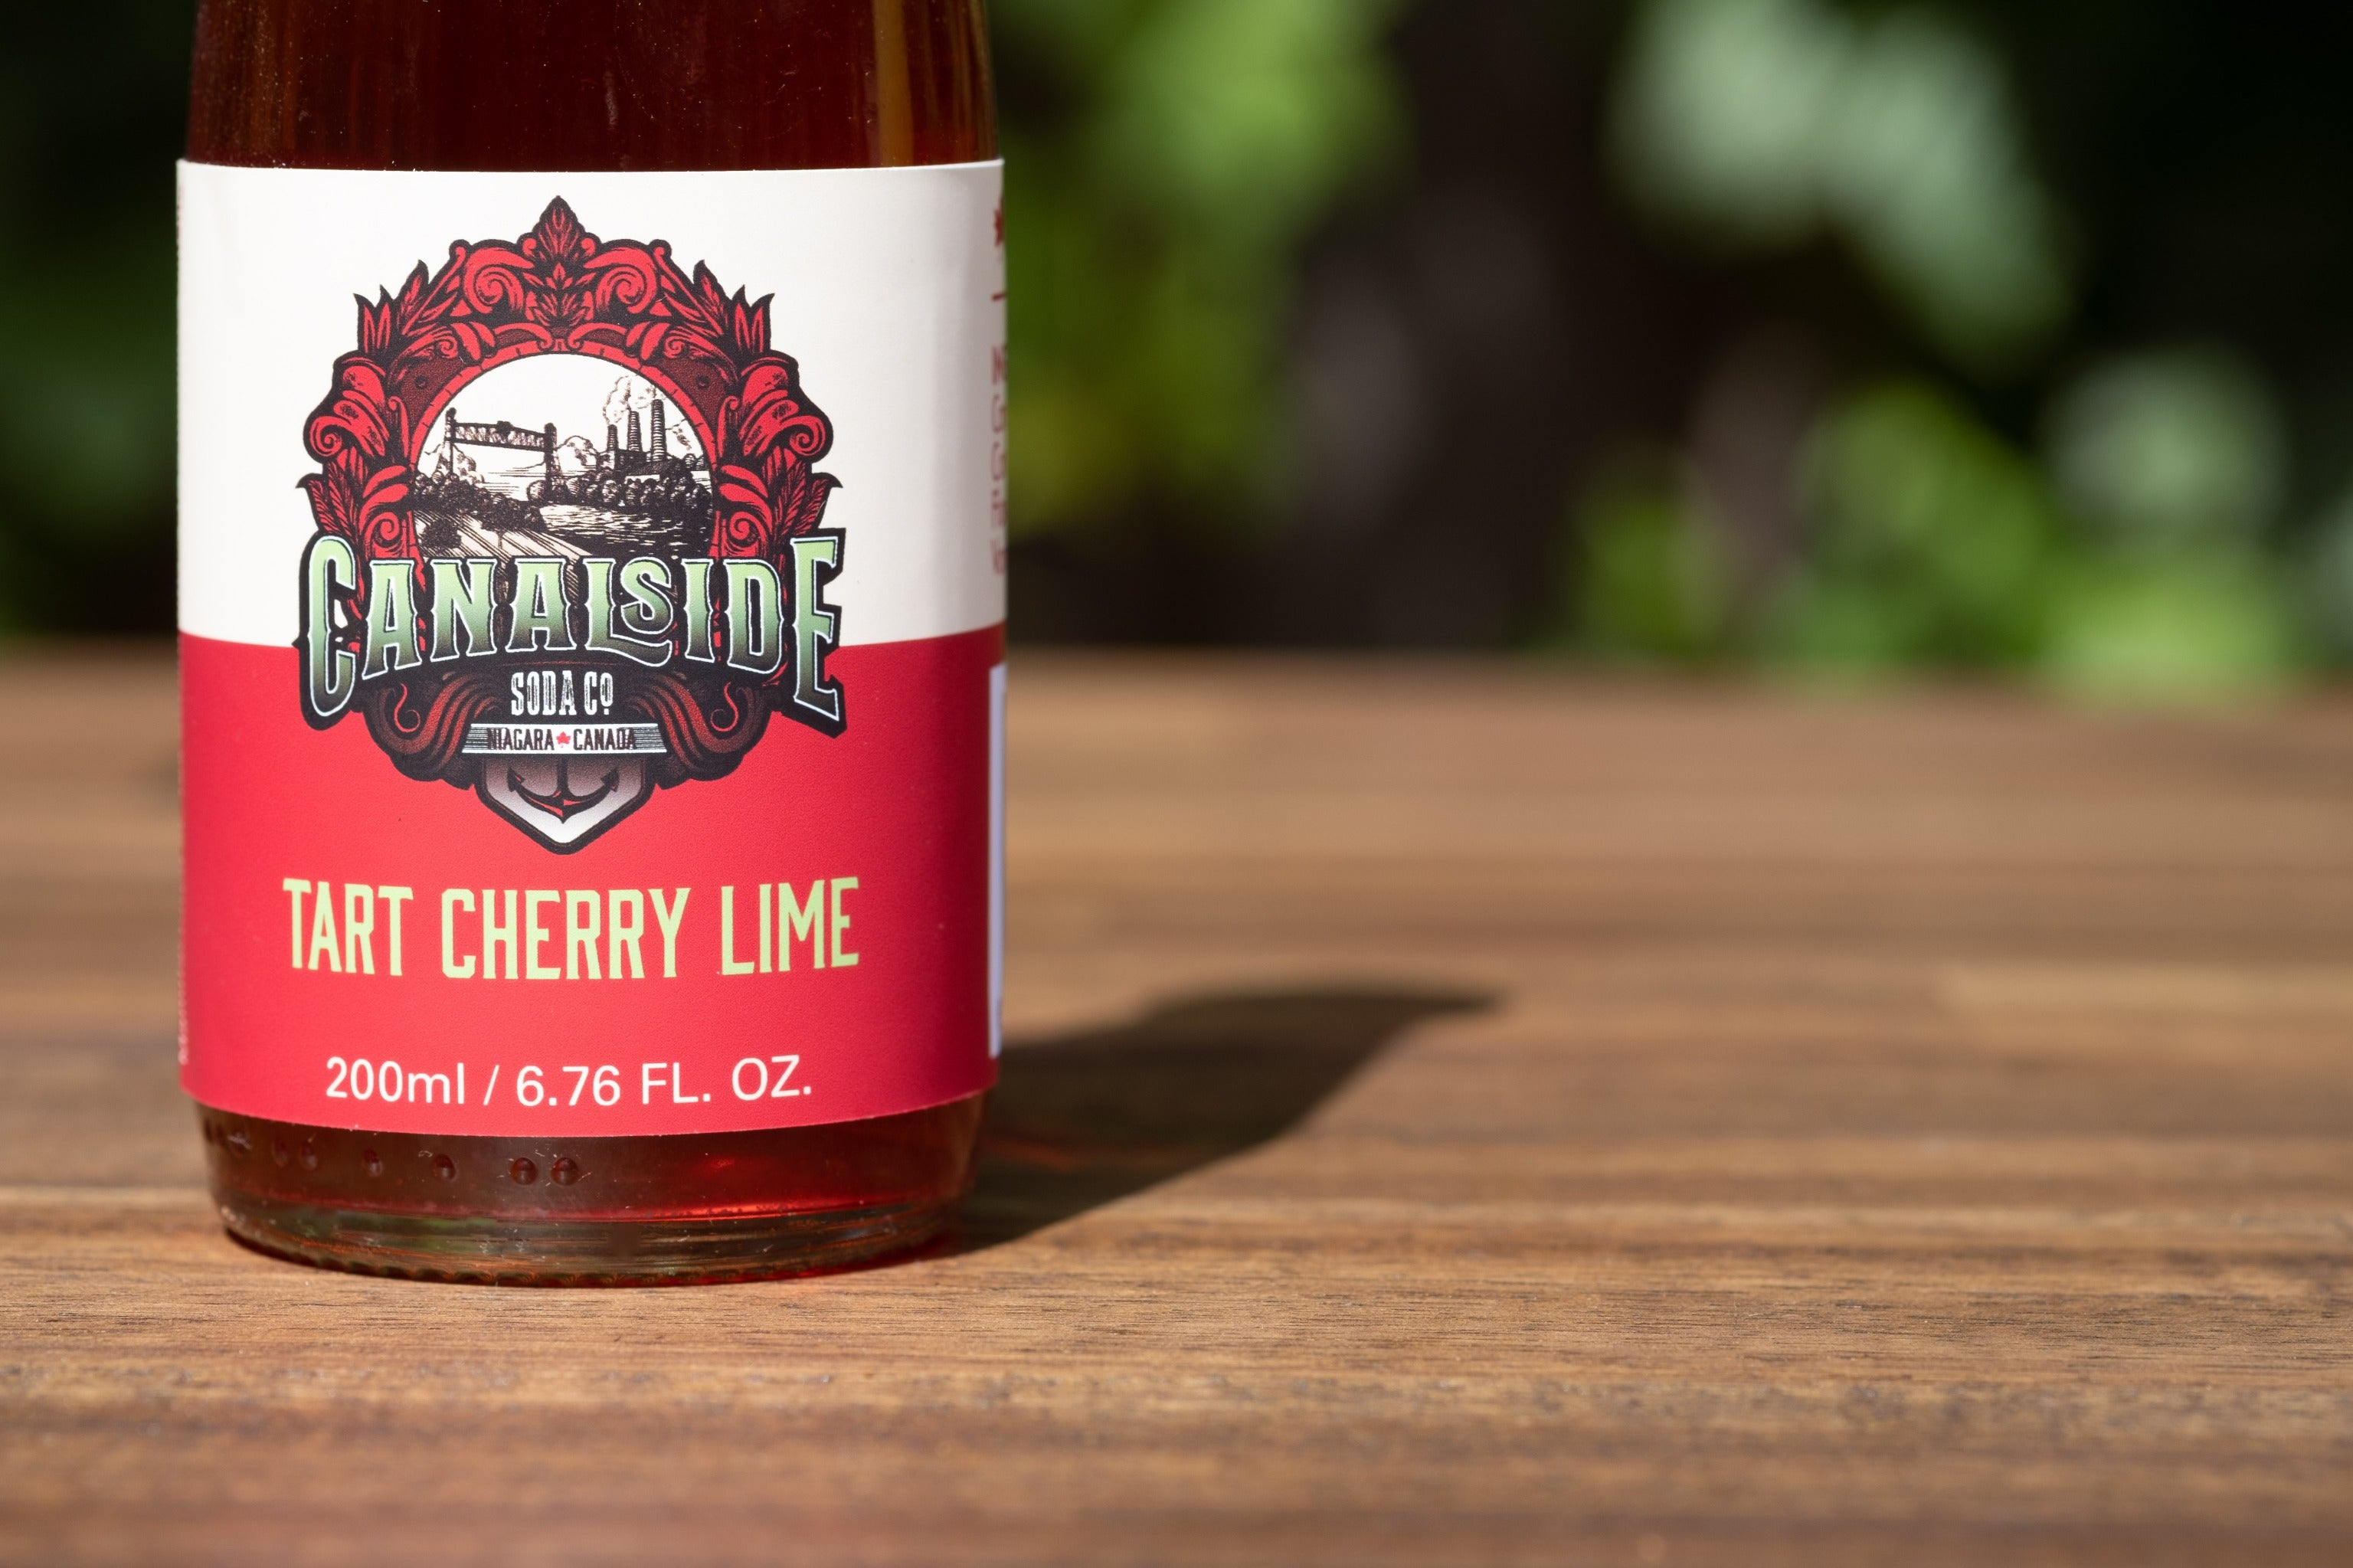 Tart Cherry Lime Soda (200ml Bottles)